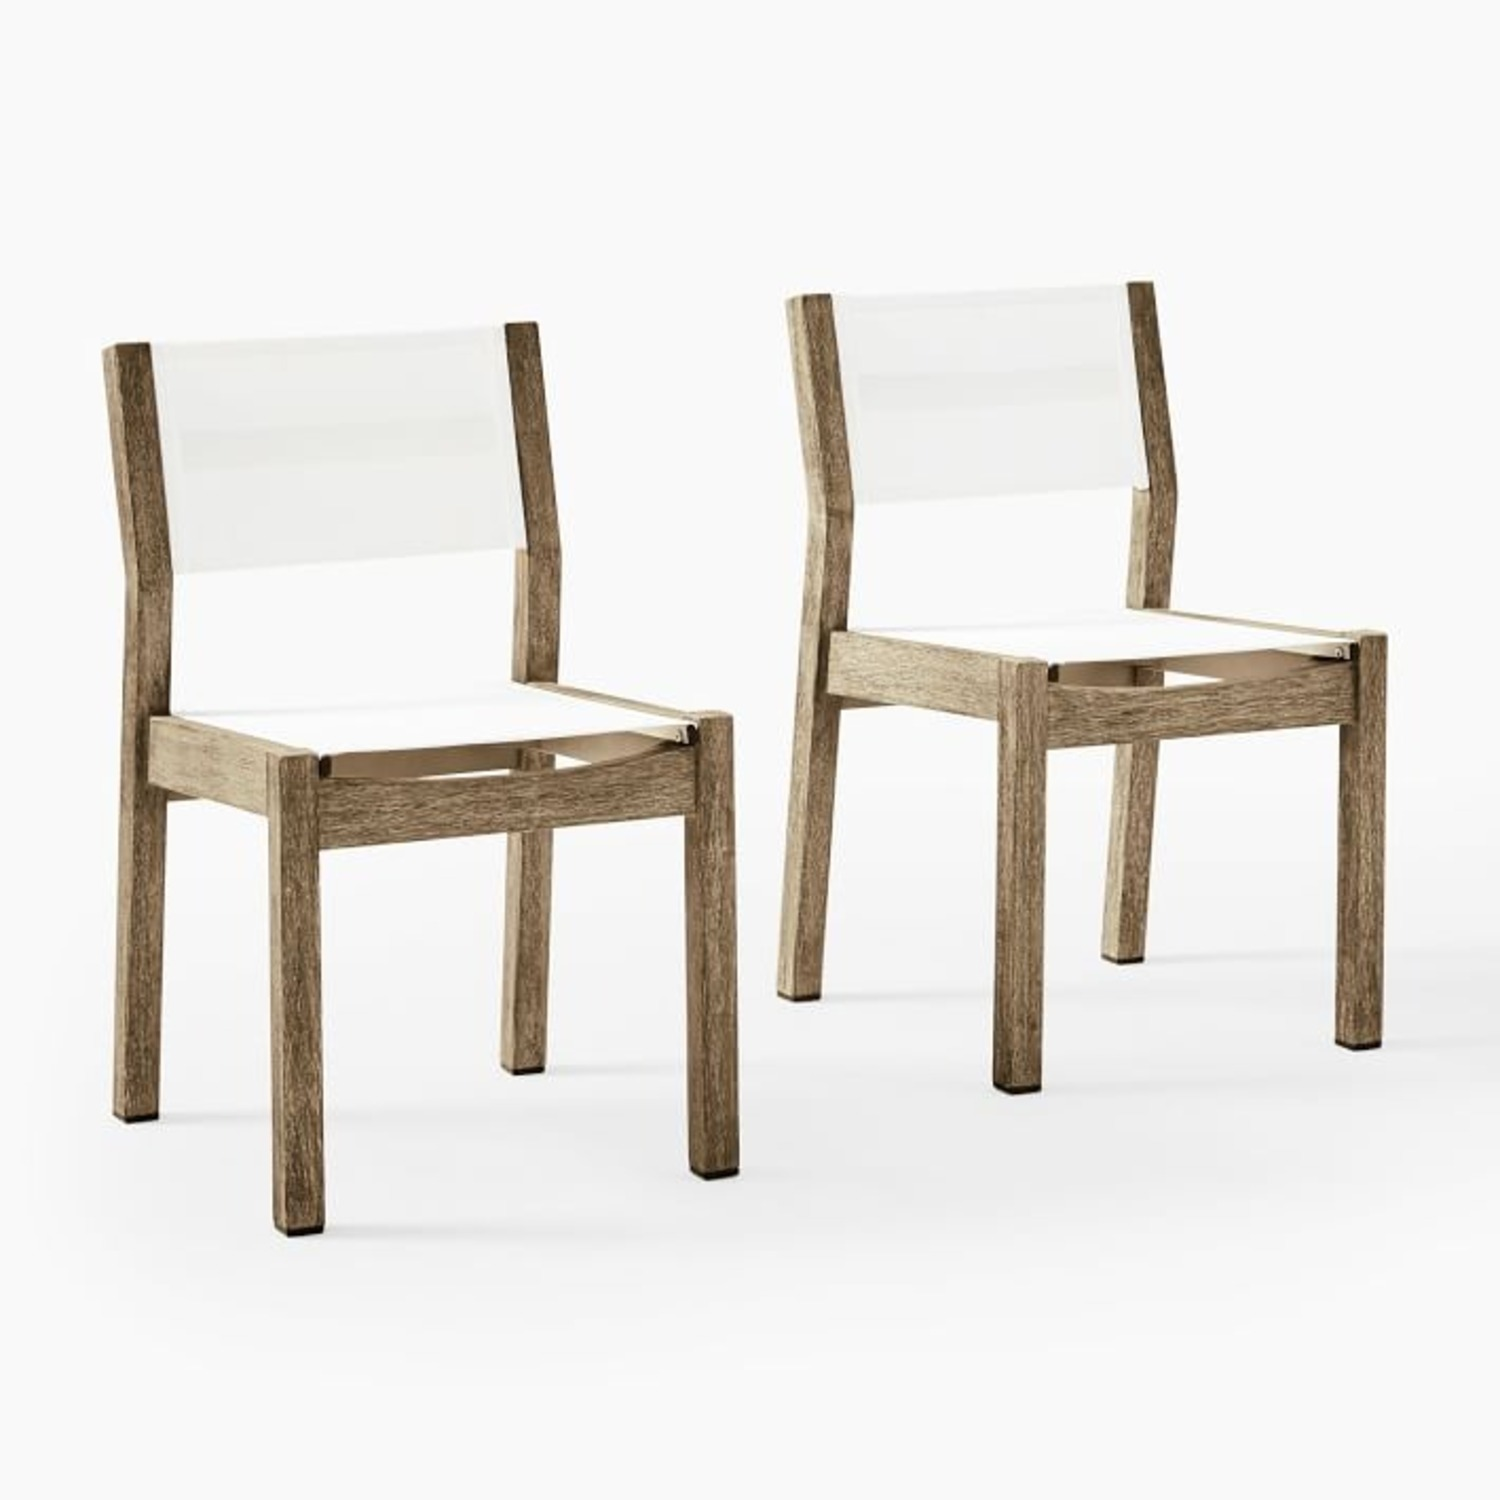 West Elm Portside Dining Chairs, Set of 2 - image-2